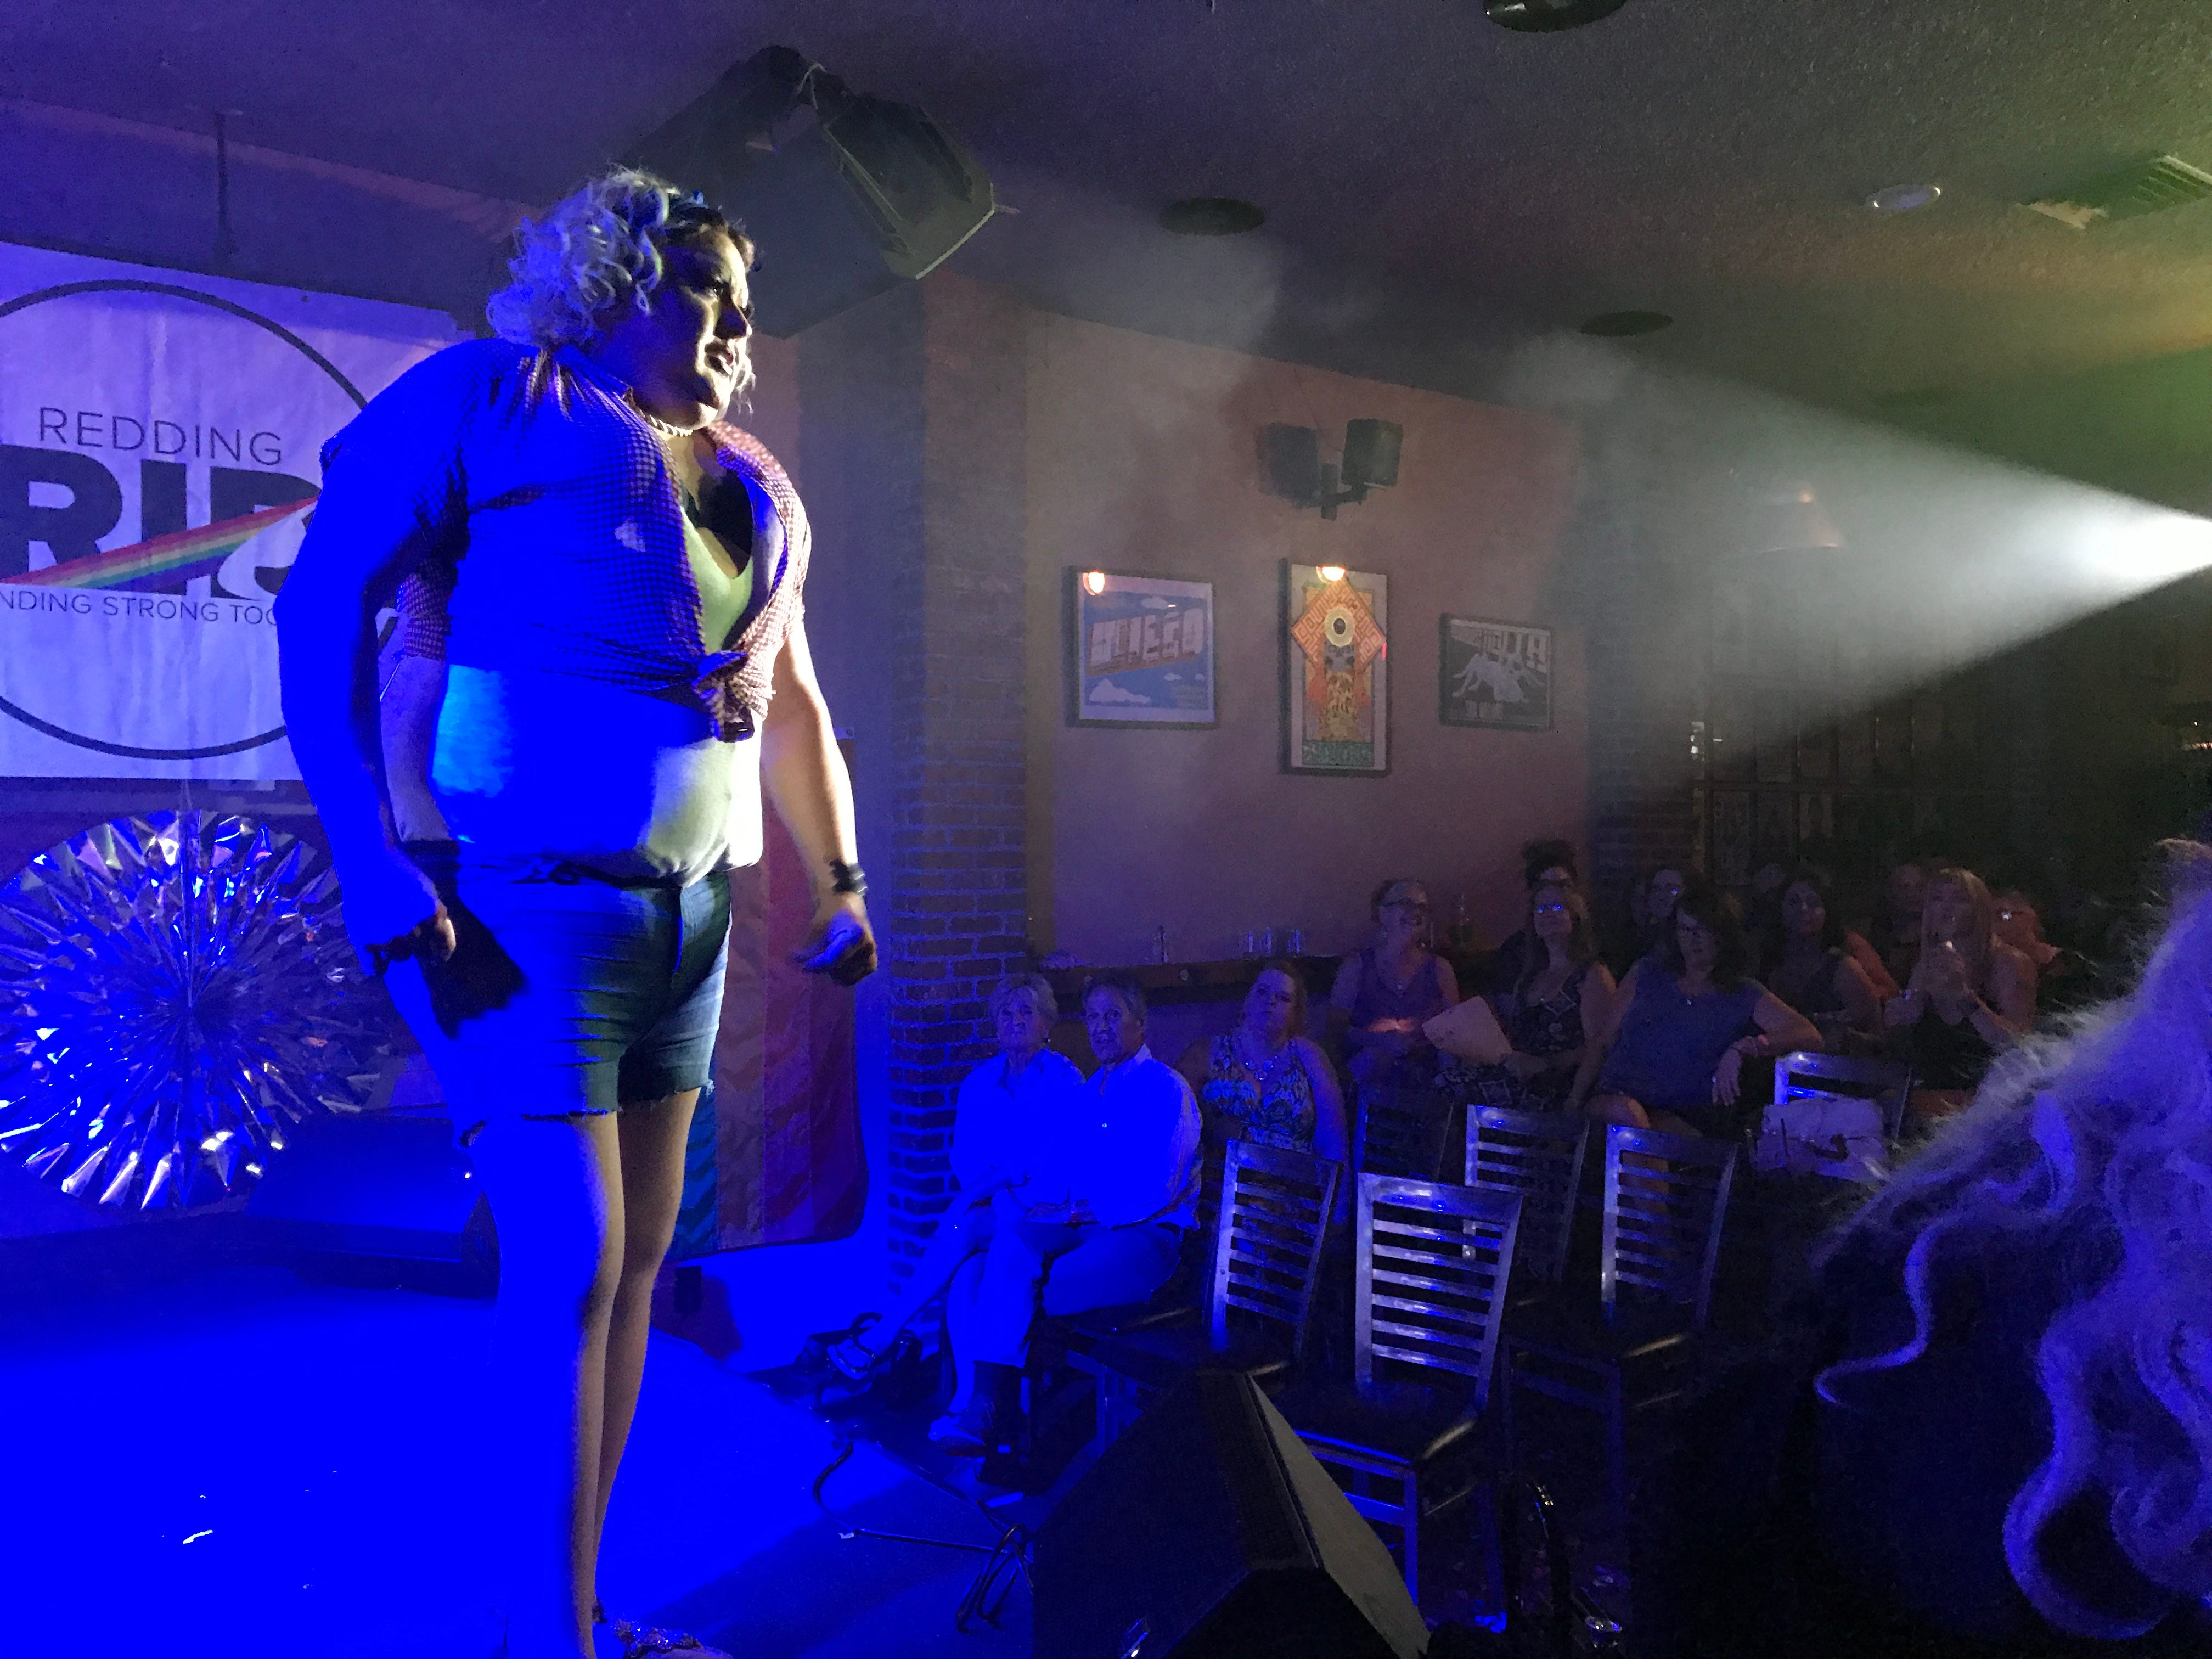 The Dip in Redding hosted drag queen and burlesque performers July 21, 2018.